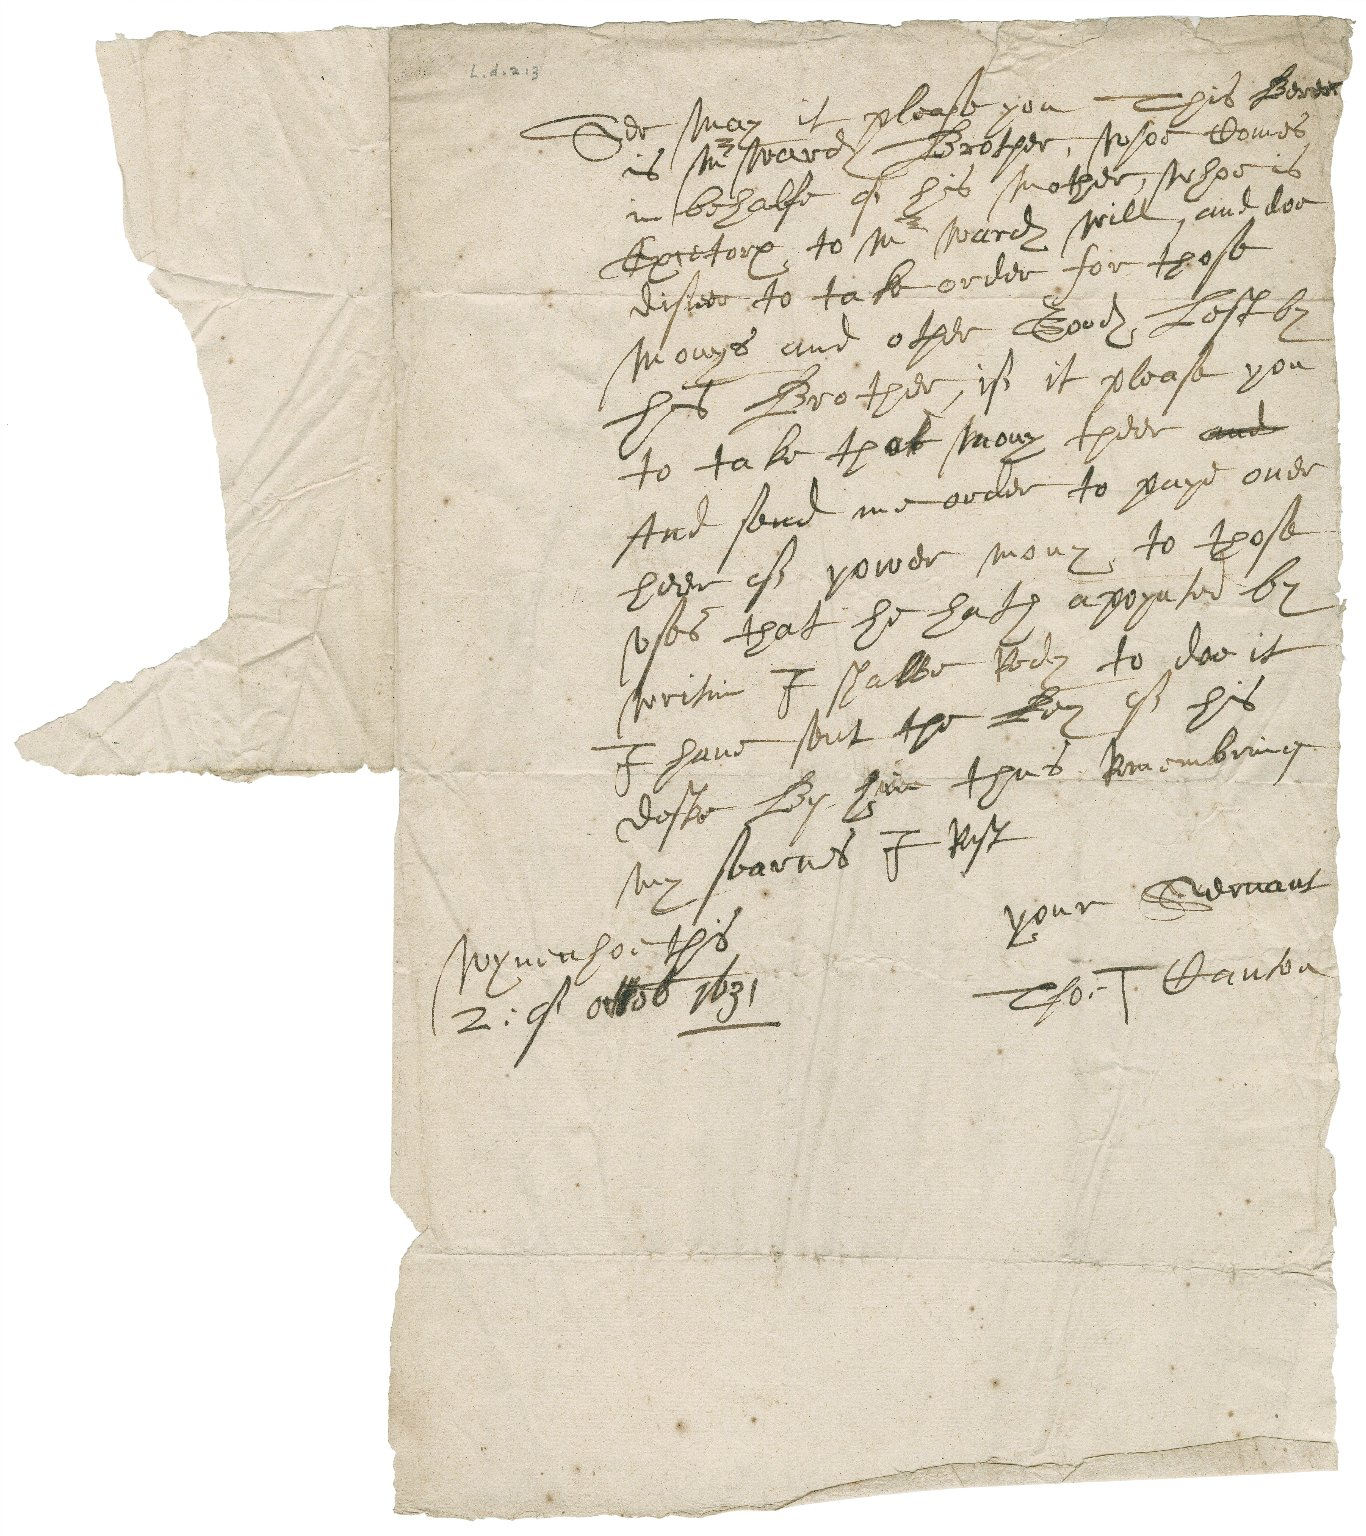 Letter from Thomas Canton to [Roger Townshend, 1st bart]